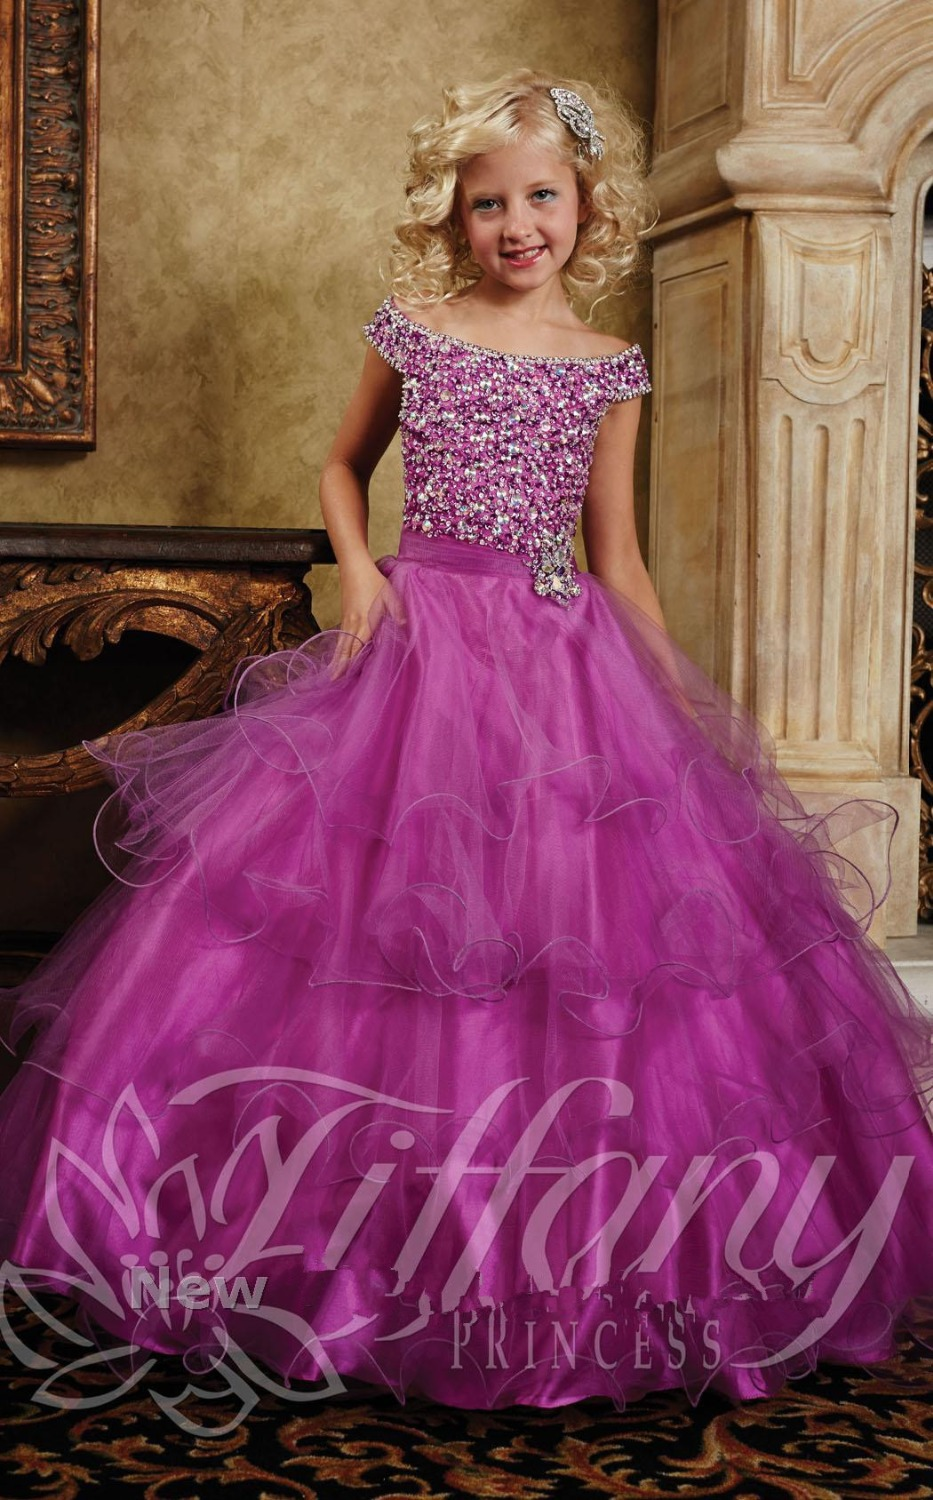 Fuschia princess kids beauty pageant ball gown dresses for for Dresses for 10 year olds for a wedding